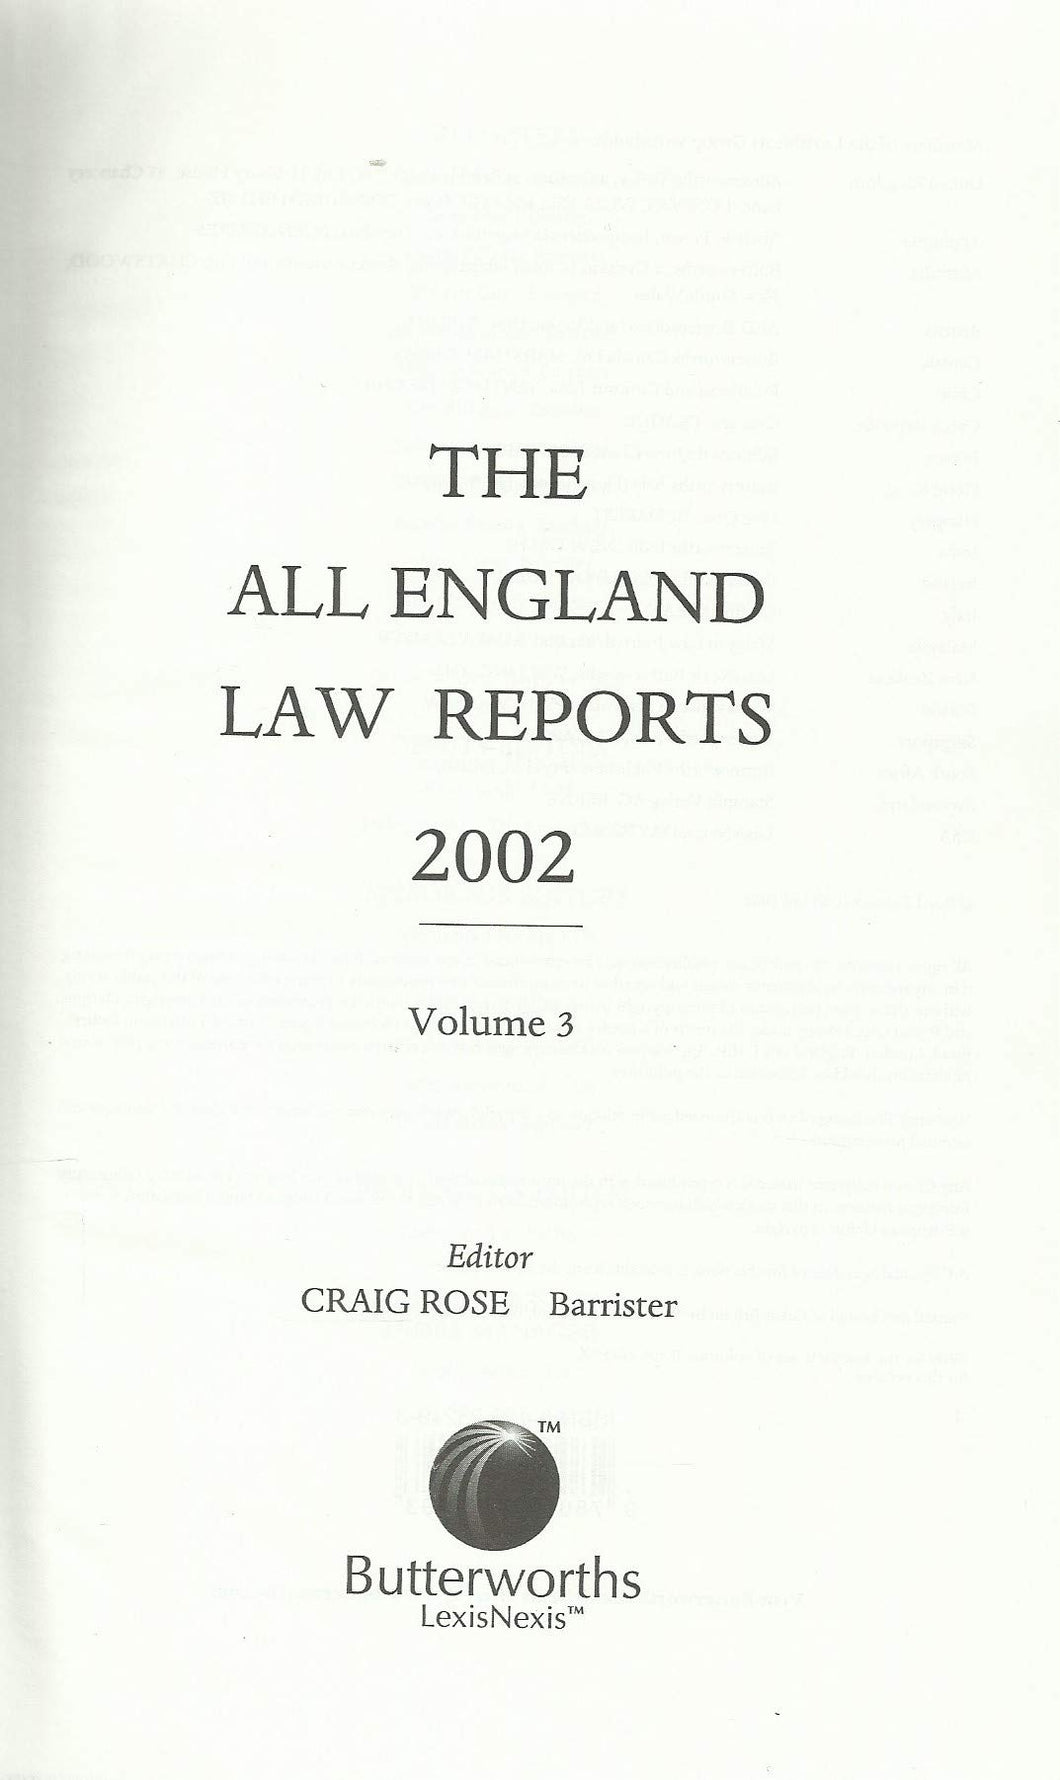 The All England Law Reports 2002, Volume 3